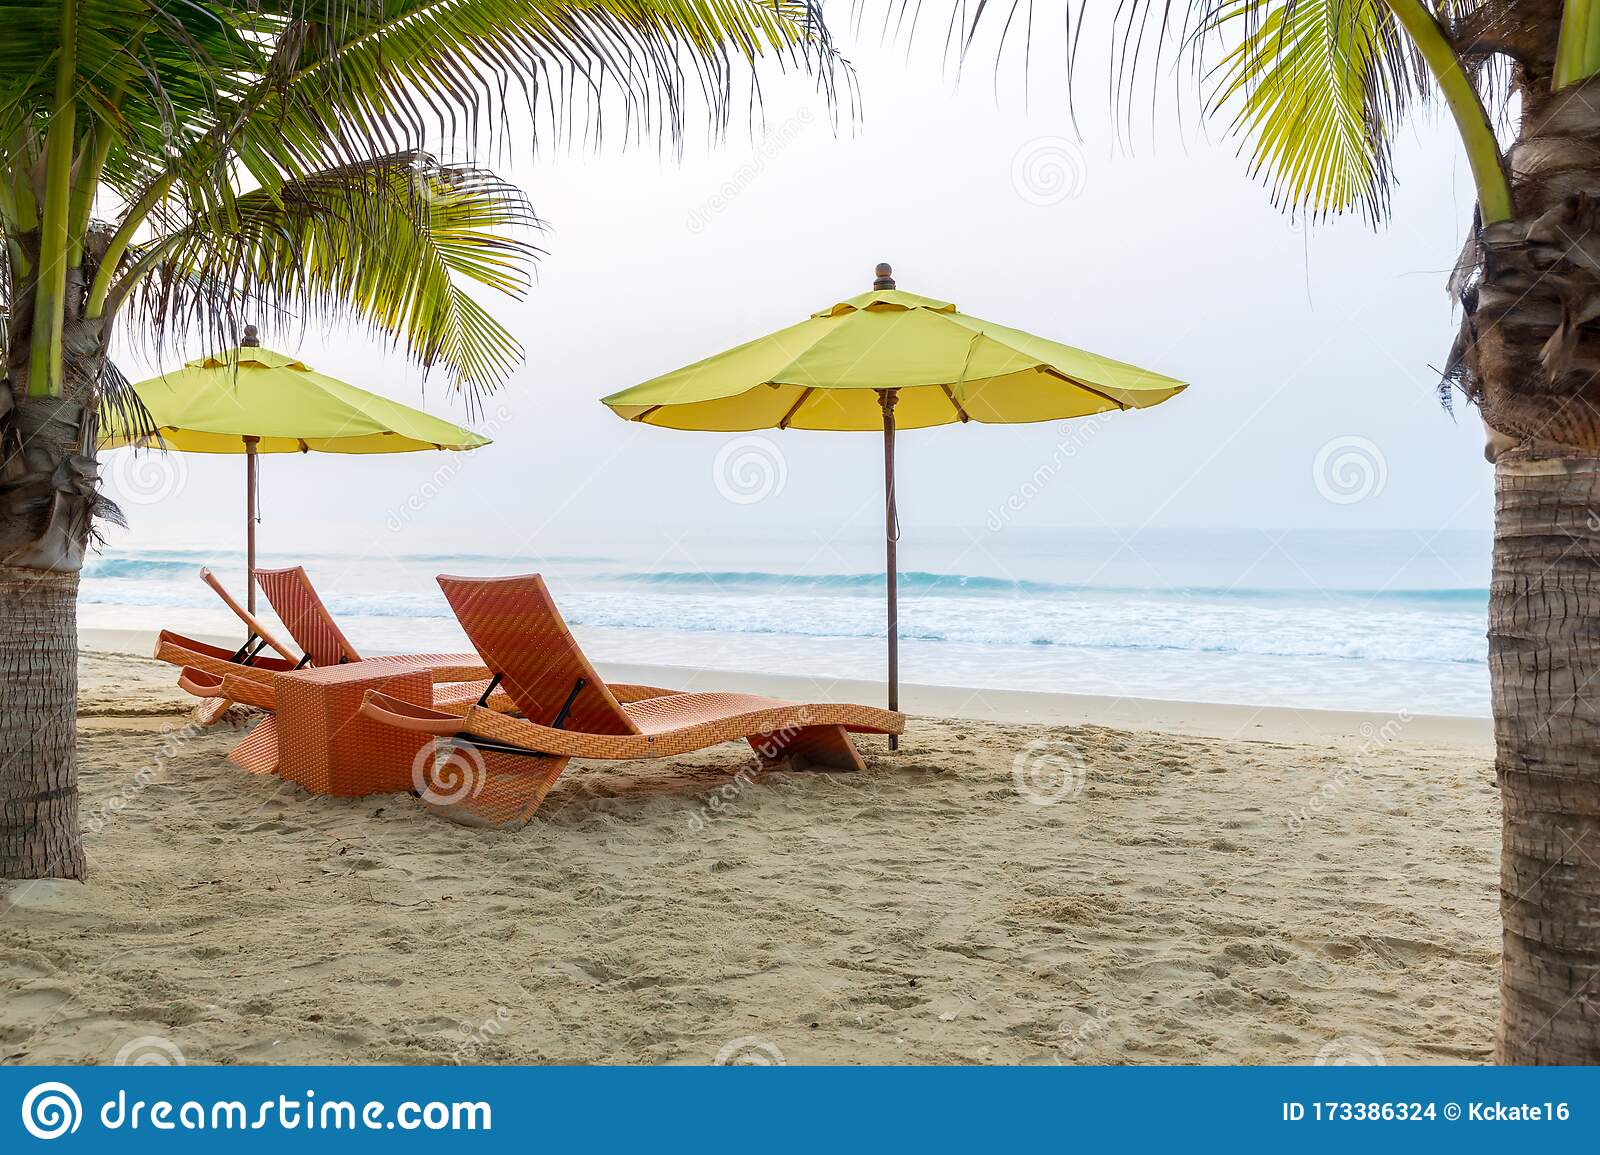 Beach Chair Under The Big Umbrella And Was On The Beach Beautiful Beach Chairs On The Sandy Beach Near The Sea Stock Photo Image Of Nature Sandy 173386324